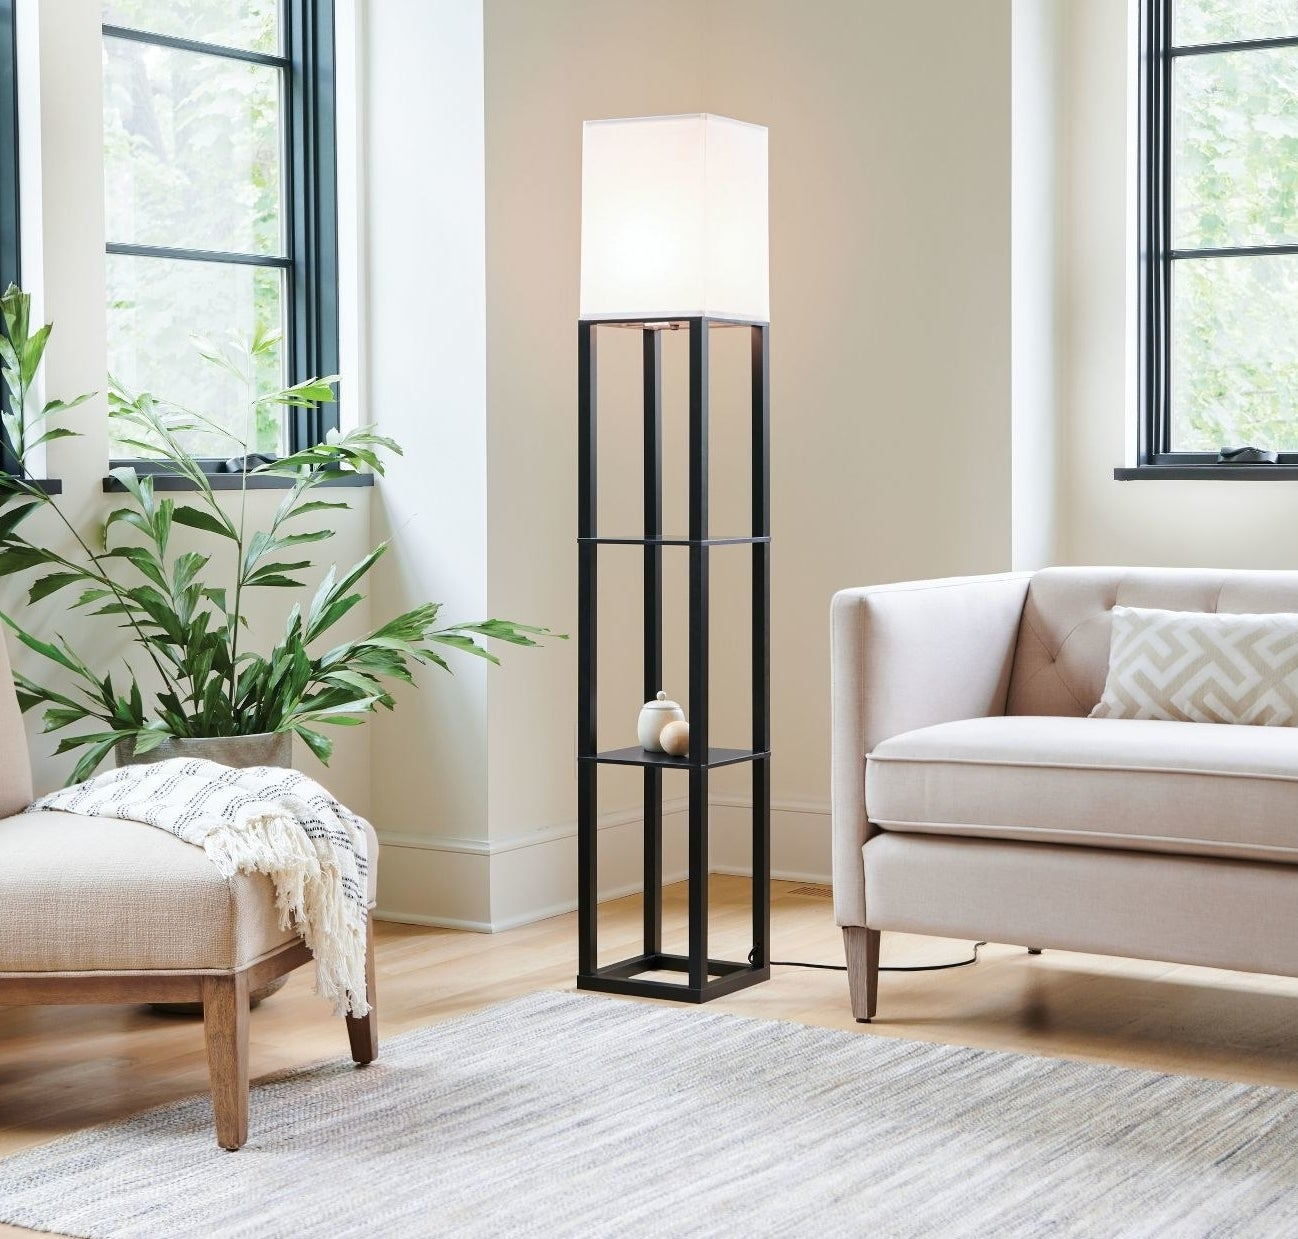 A black shelved floor lamp stand with a white shade